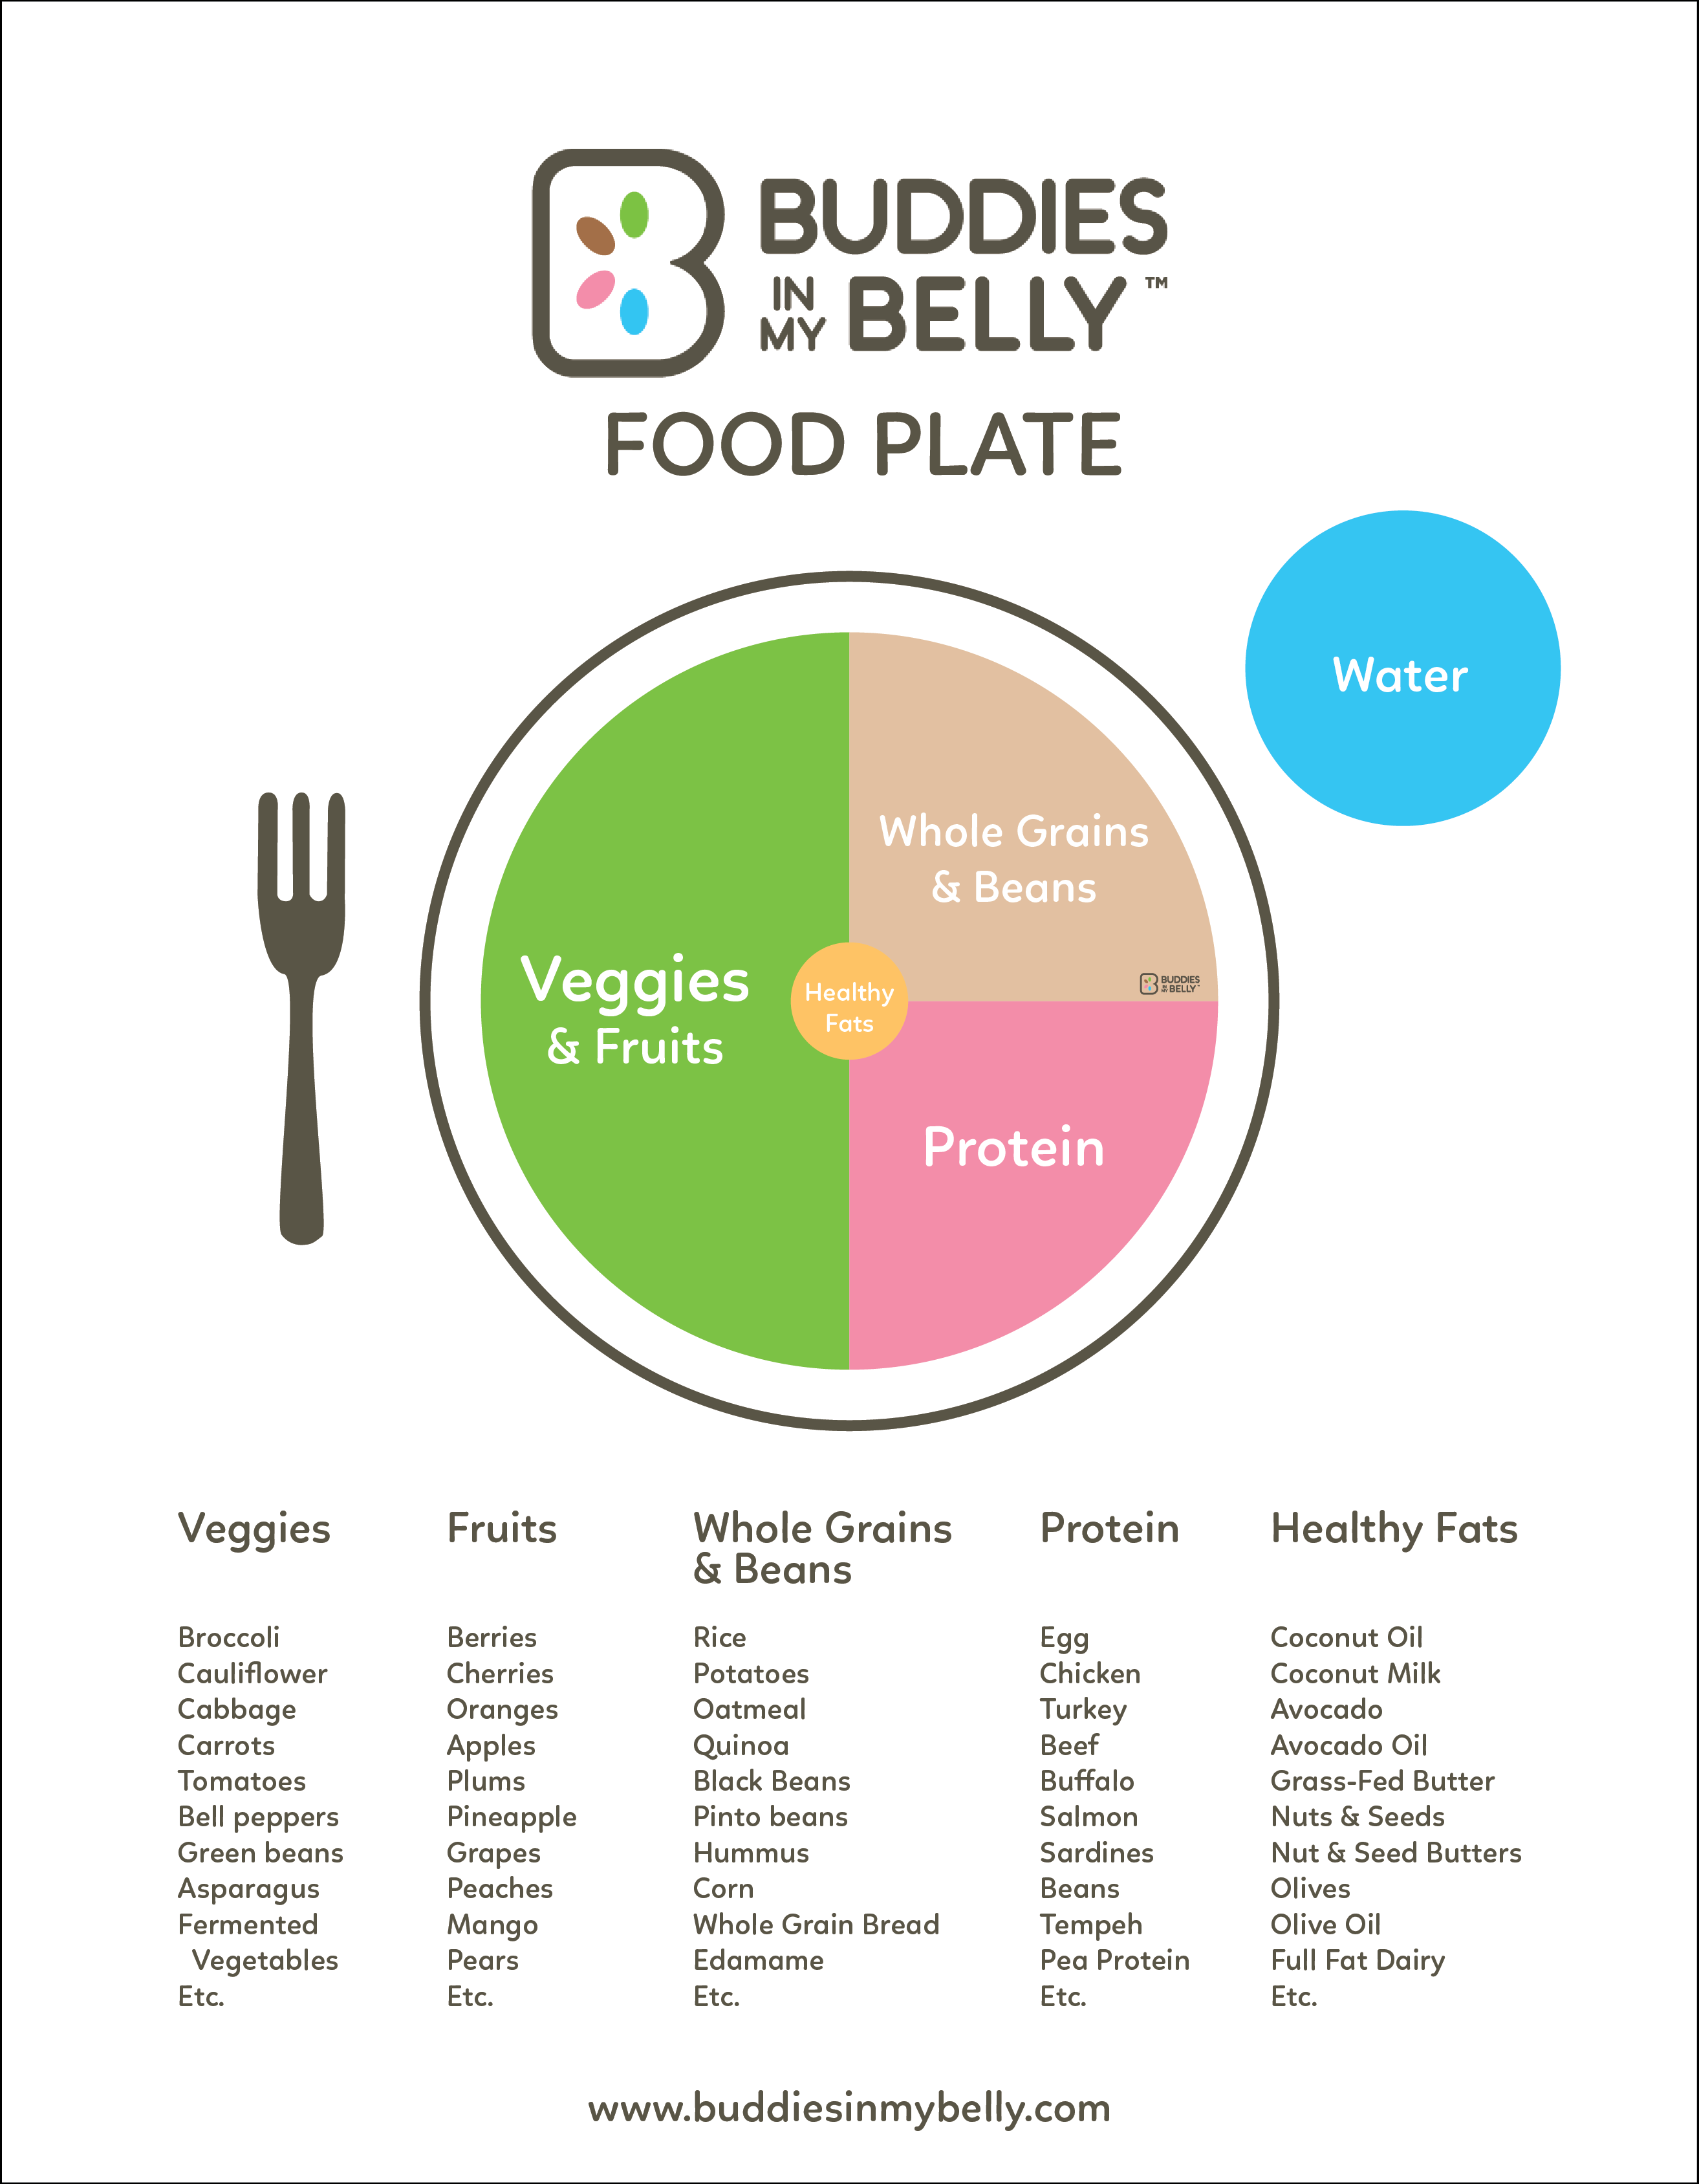 Resources Buddies In My Belly Avocadoseeddiagram1 Download The Food Plate Here